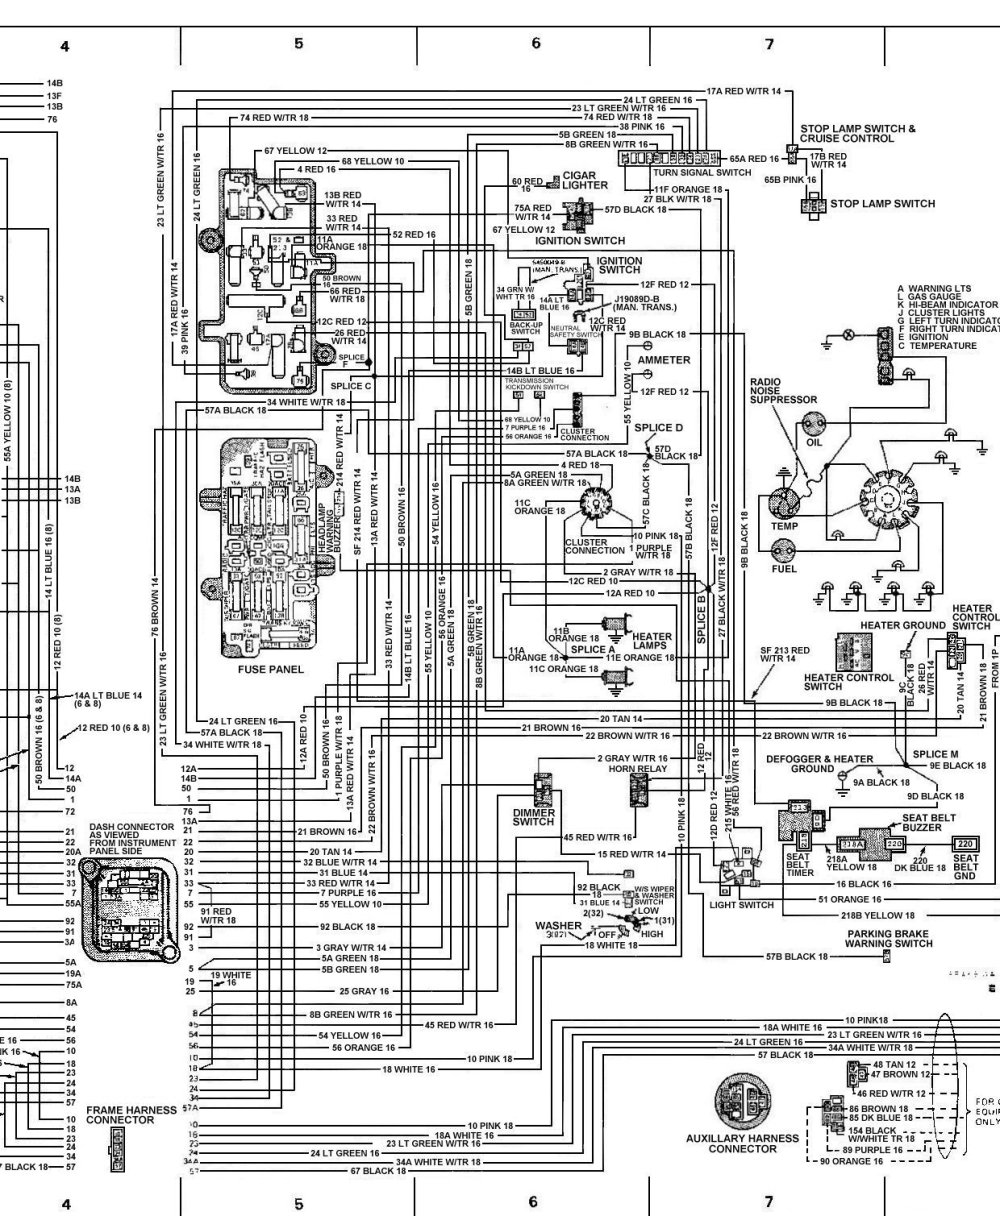 medium resolution of wiring diagram 1 78 fsj wiringdiagrampage8